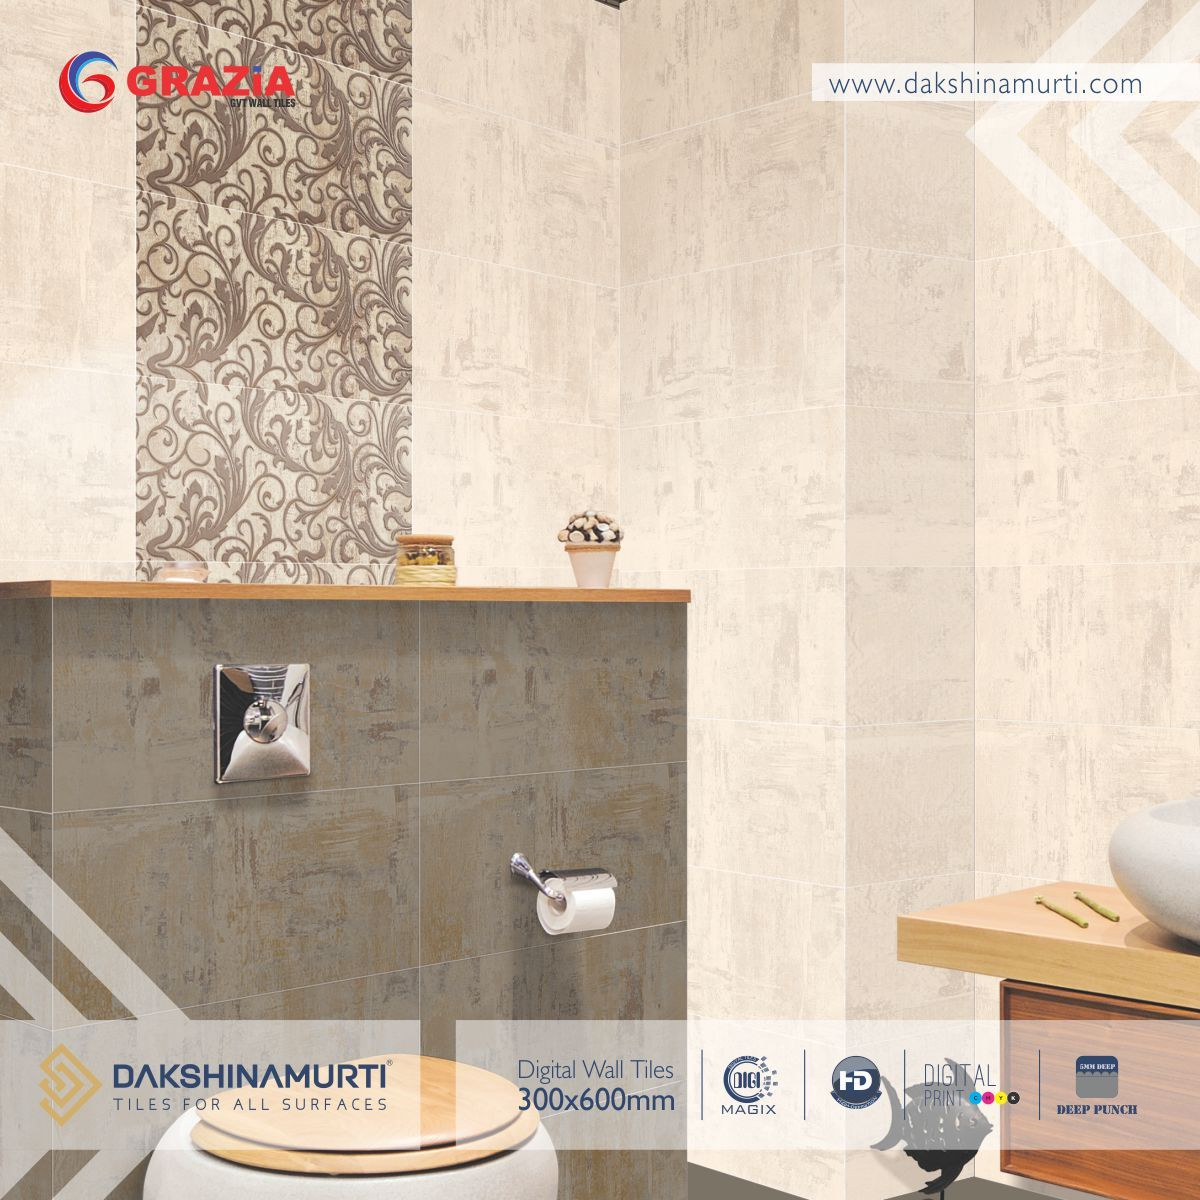 Let your walls depict your love for eminence and elegance by fixing let your walls depict your love for eminence and elegance by fixing dakshinamurti tiles dakshinamurtitiles dailygadgetfo Gallery